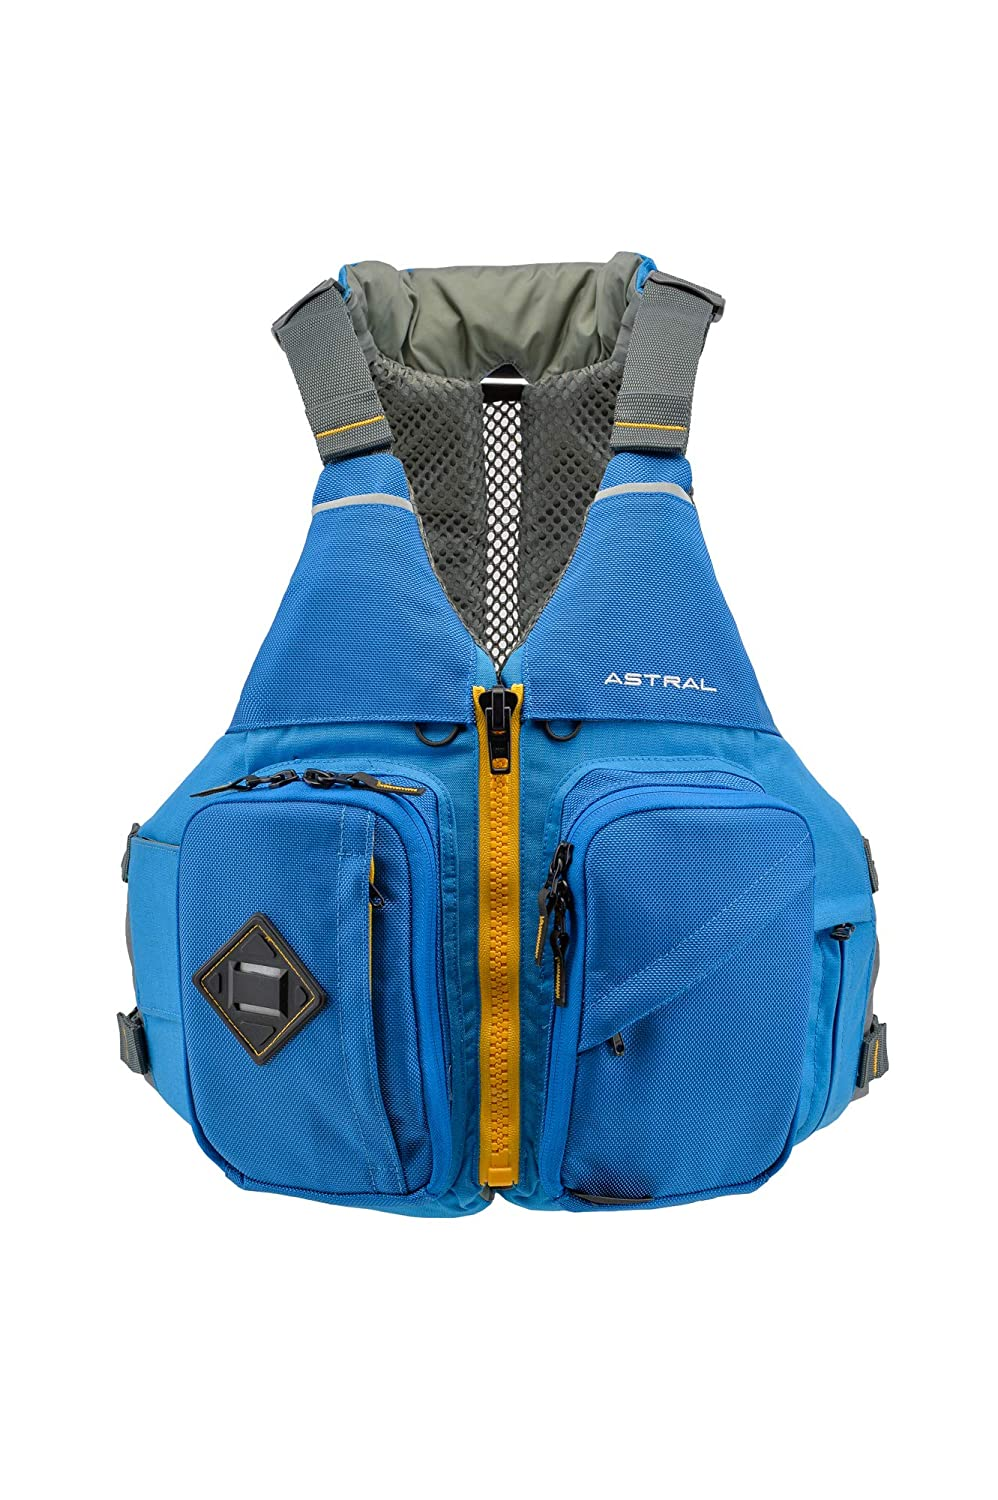 Astral Ronny Fisher Life Jacket PFD for Fishing Recreation and Touring Kayaking